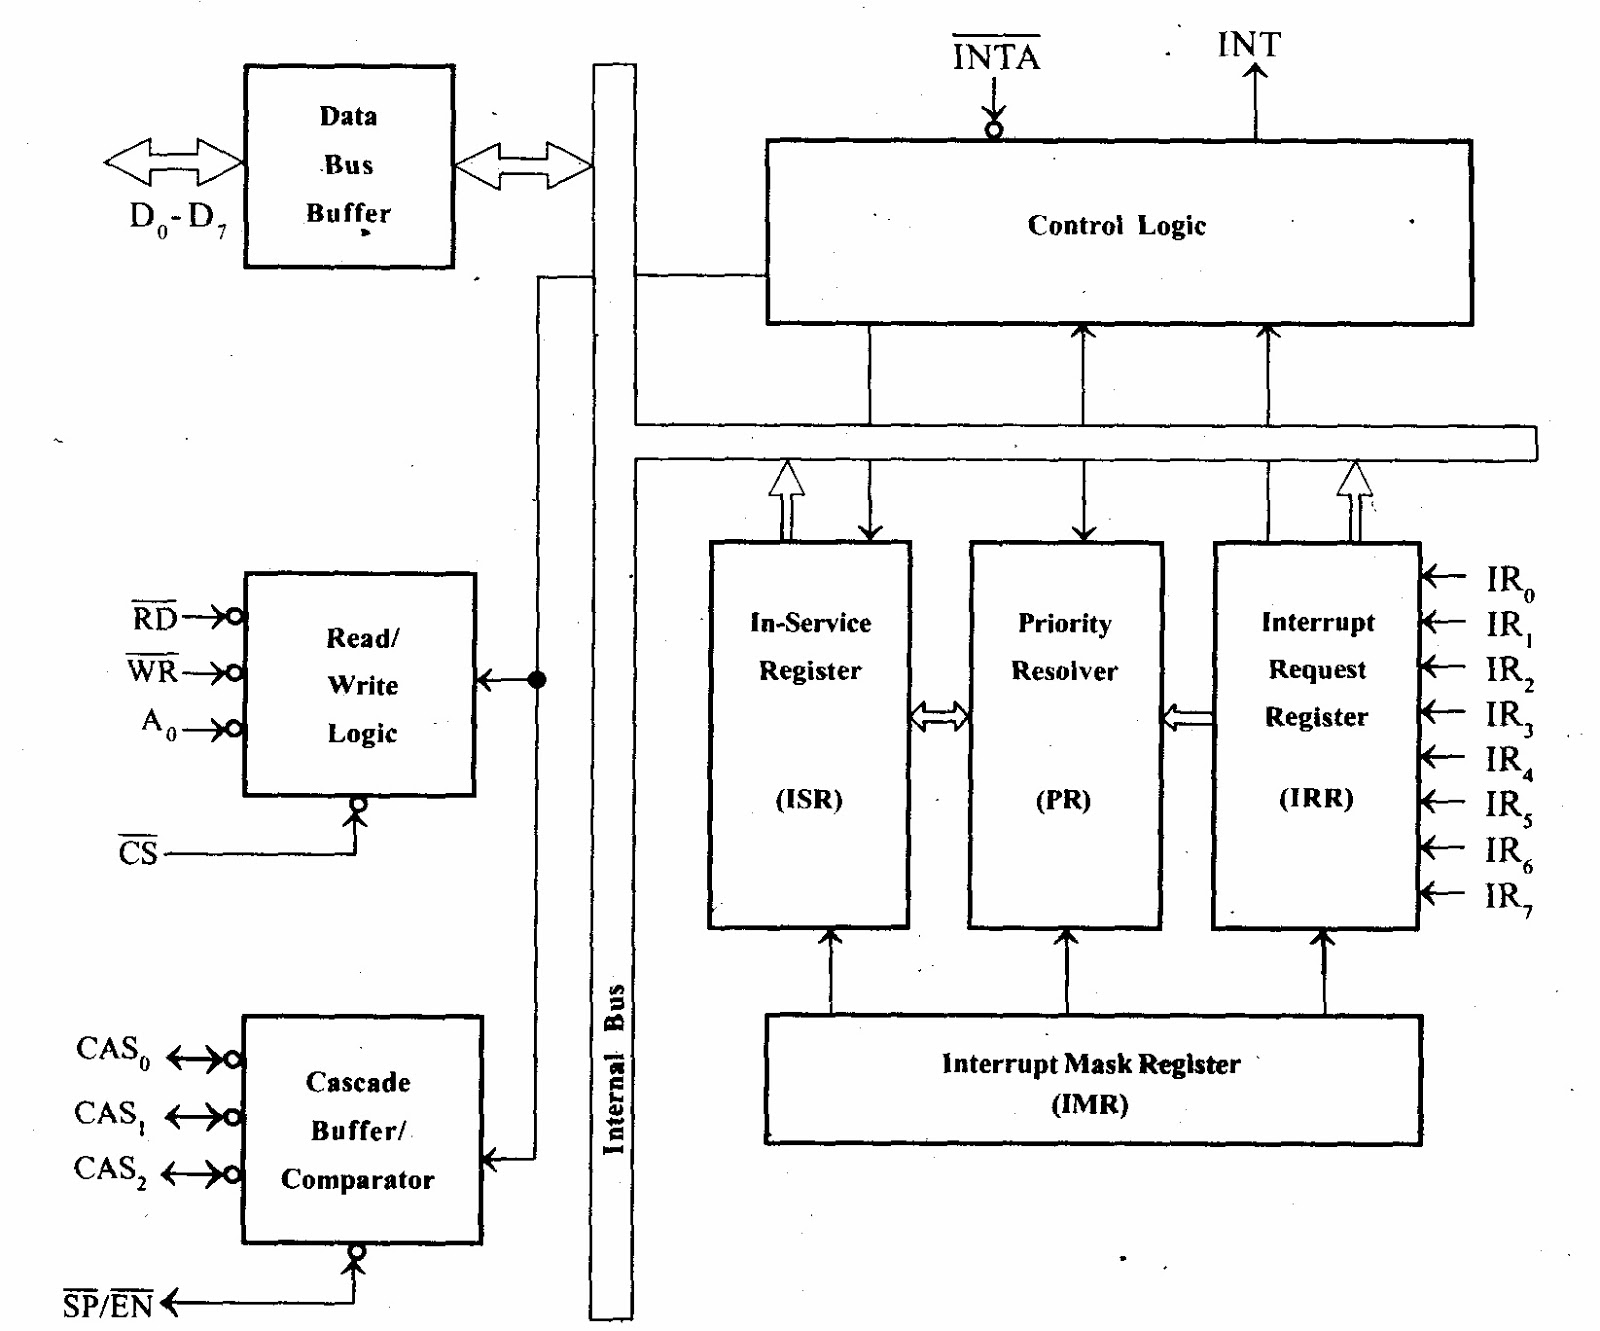 small resolution of features functional block diagram of 8259 processor